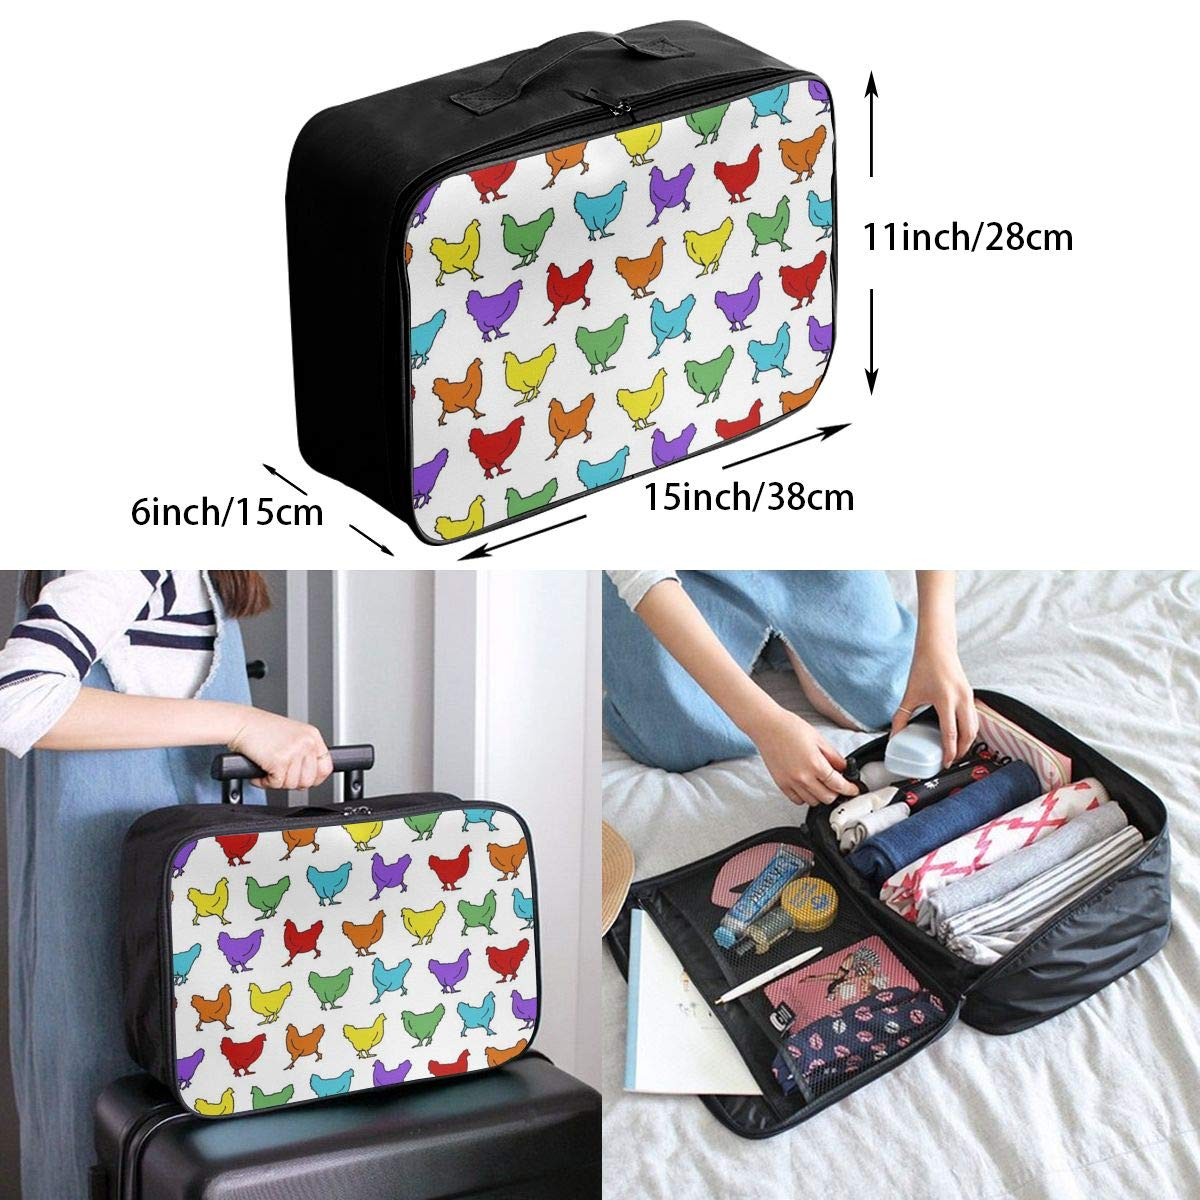 Lightweight Large Capacity Duffel Portable Luggage Bag Hens Chicken Rainbow Travel Waterproof Foldable Storage Carry Tote Bag